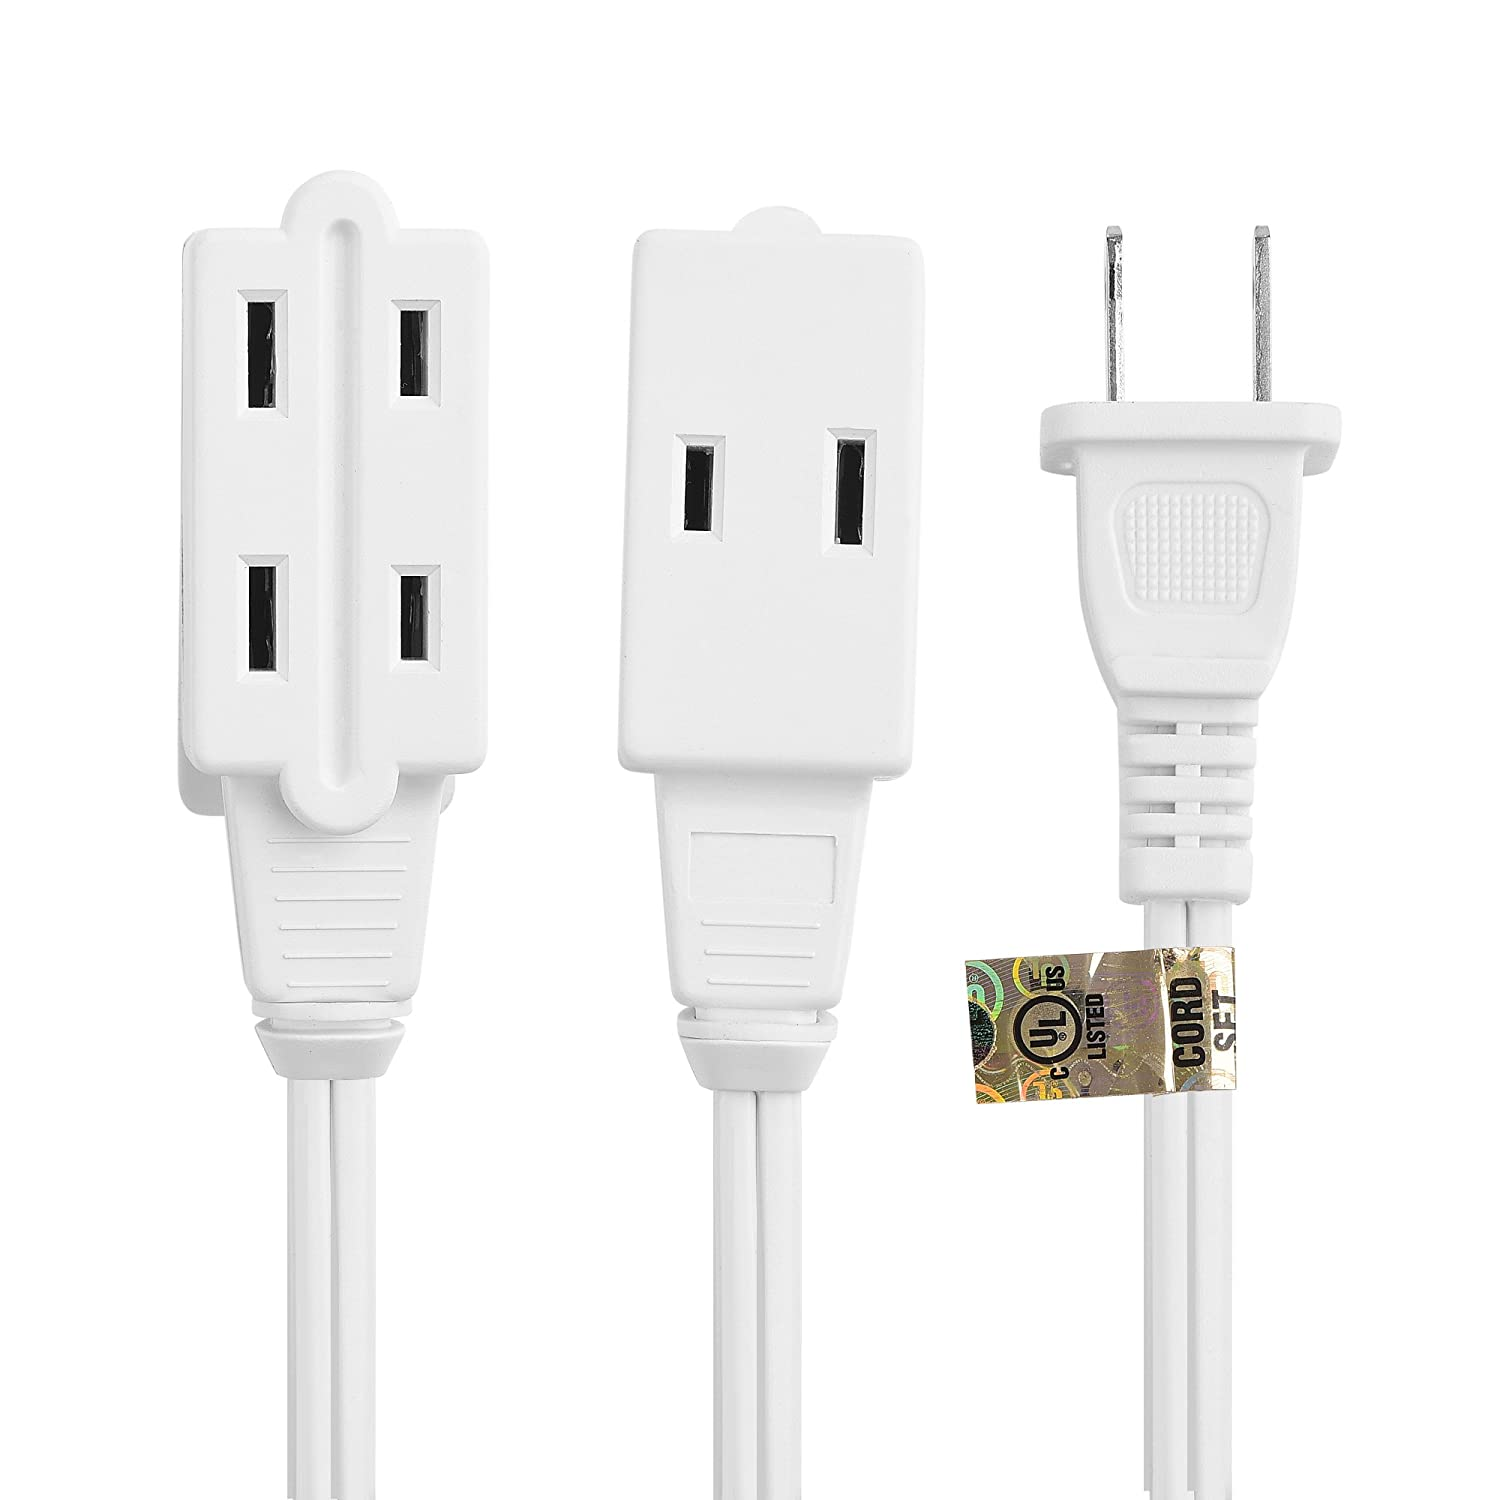 Cable Matters 16 Awg 2 Prong Extension Cord 3 Outlet Wiring Diagram With Tamper Guard White In 25 Feet Available 6ft 25ft Electronics